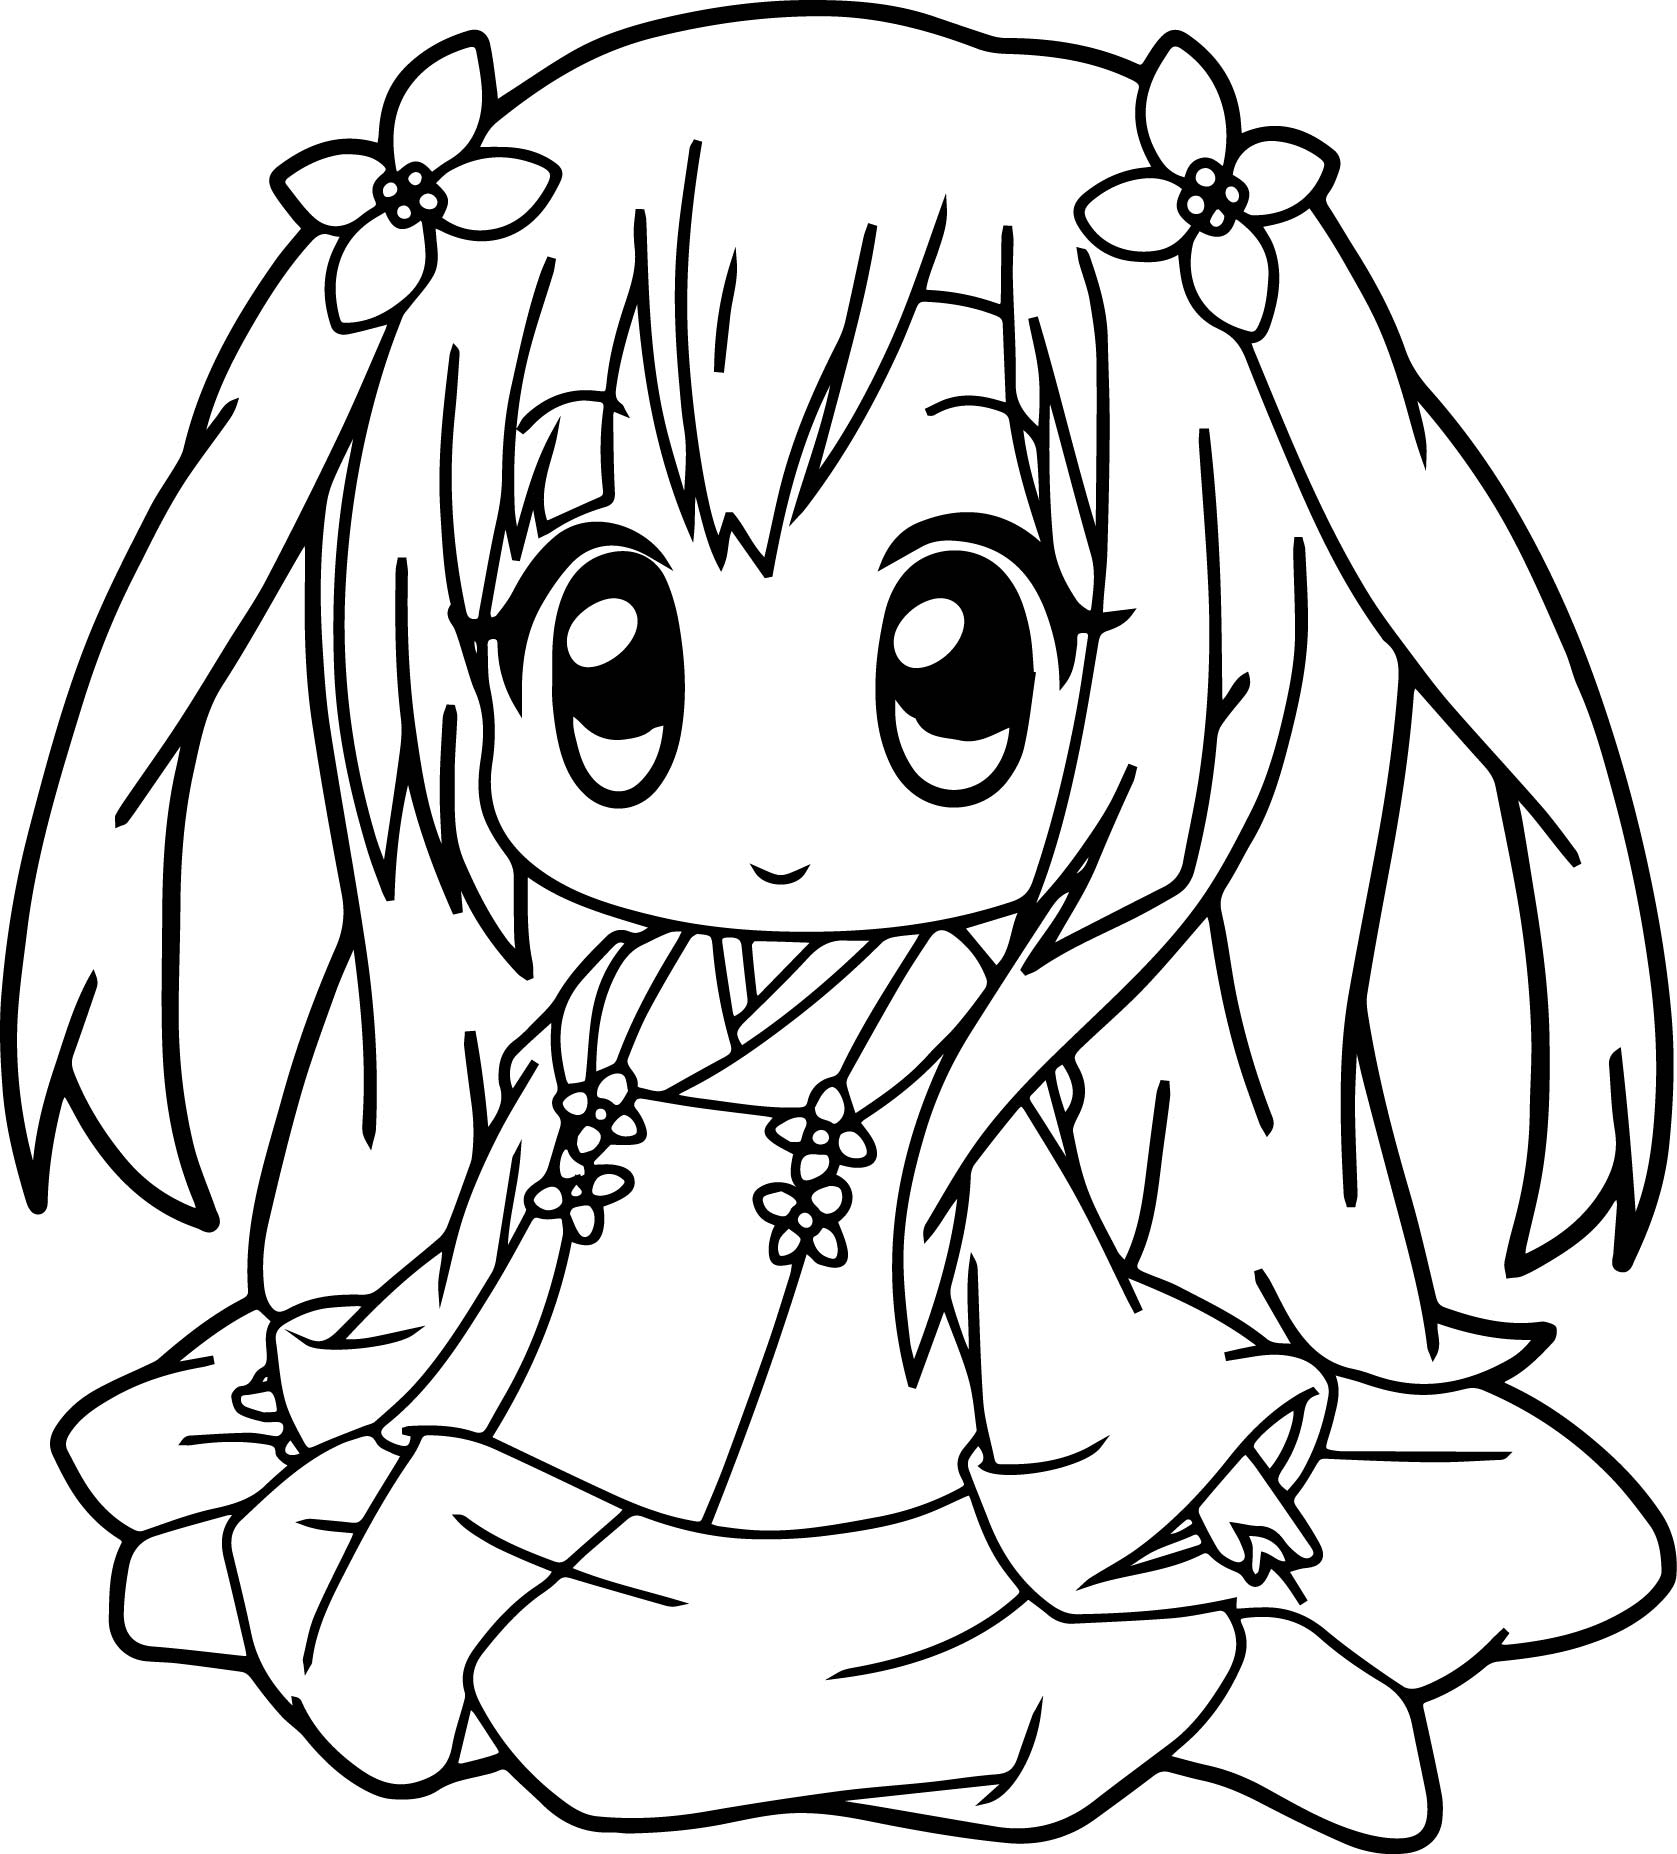 coloring sheet anime girl anime coloring pages printable various styles k5 worksheets girl sheet anime coloring